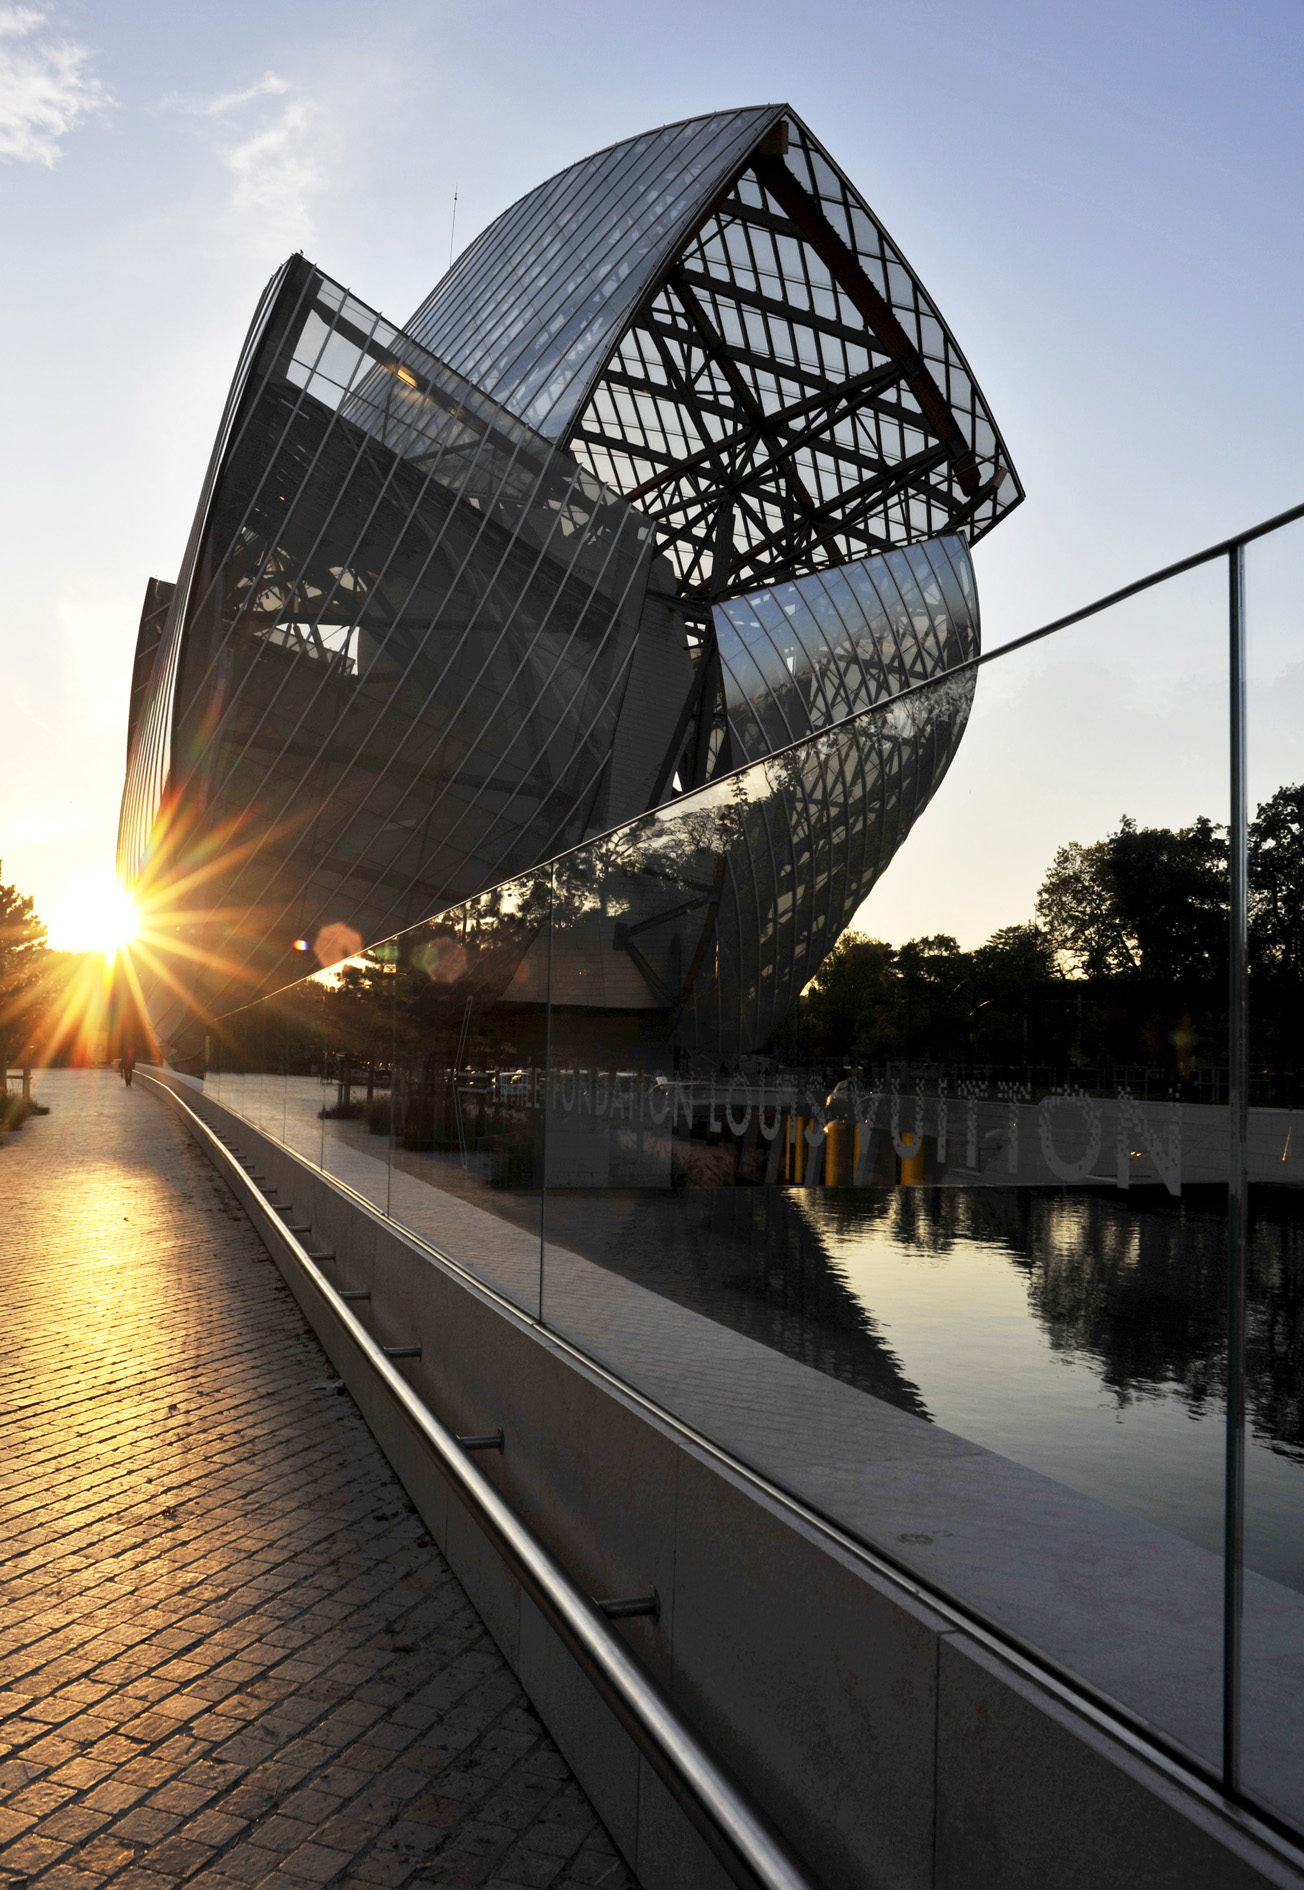 Fondation-Louis-VUITTON-©P.THERME83 Reportages Photo Paris